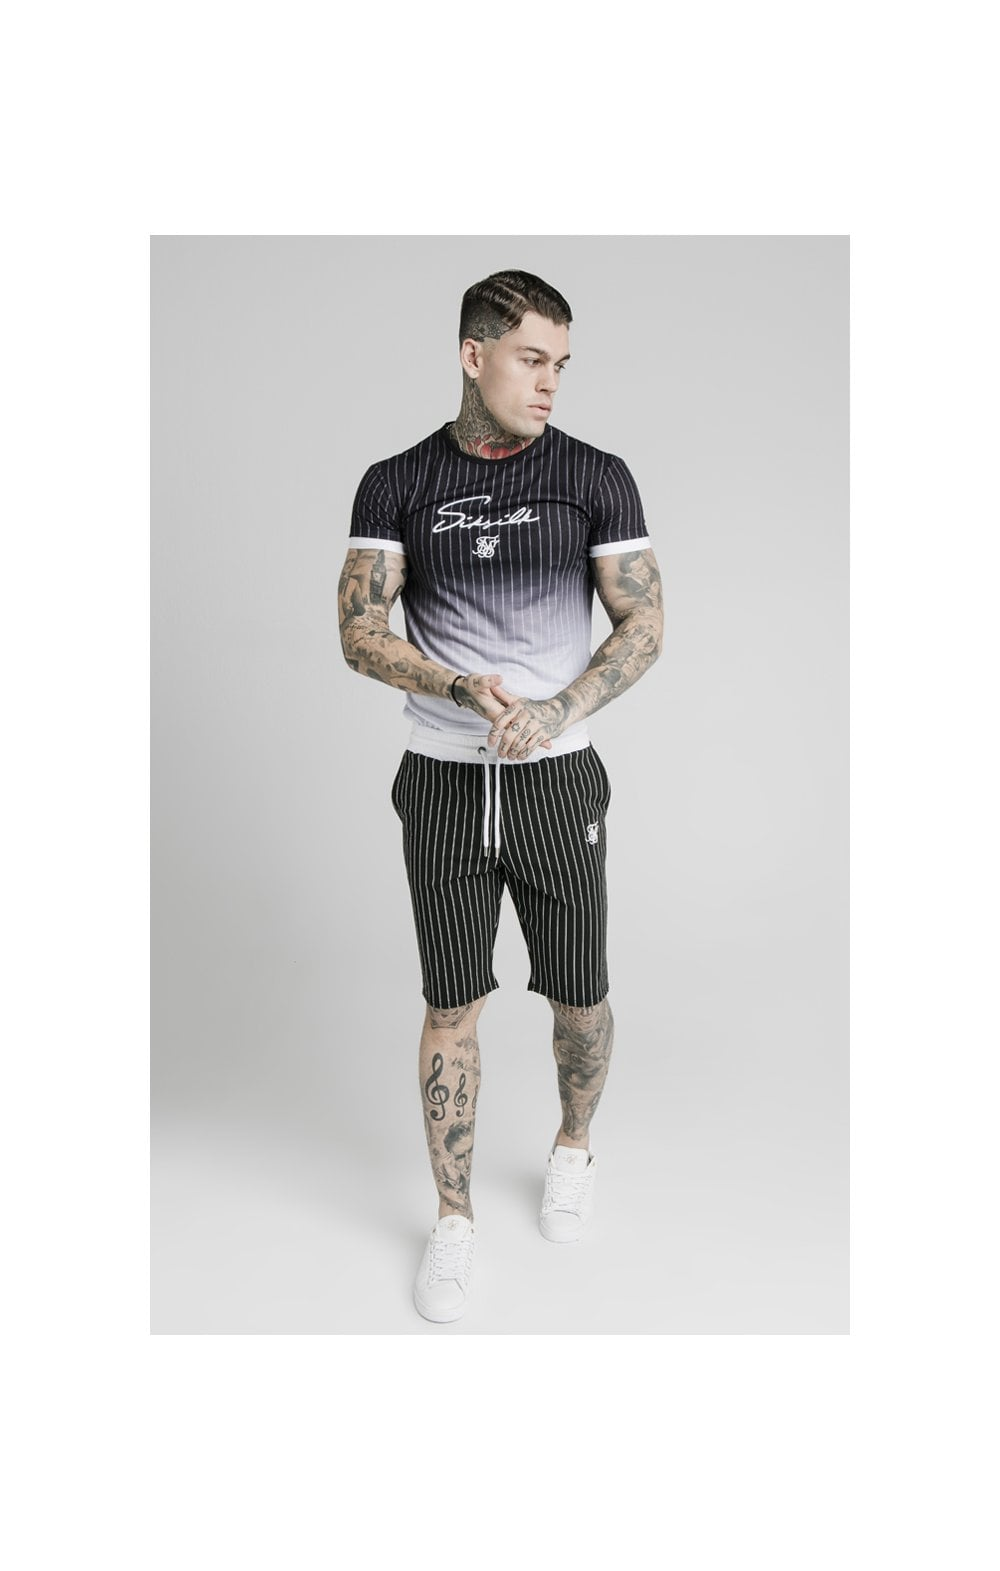 SikSilk Chino Elasticated Long Shorts - Black & White (2)